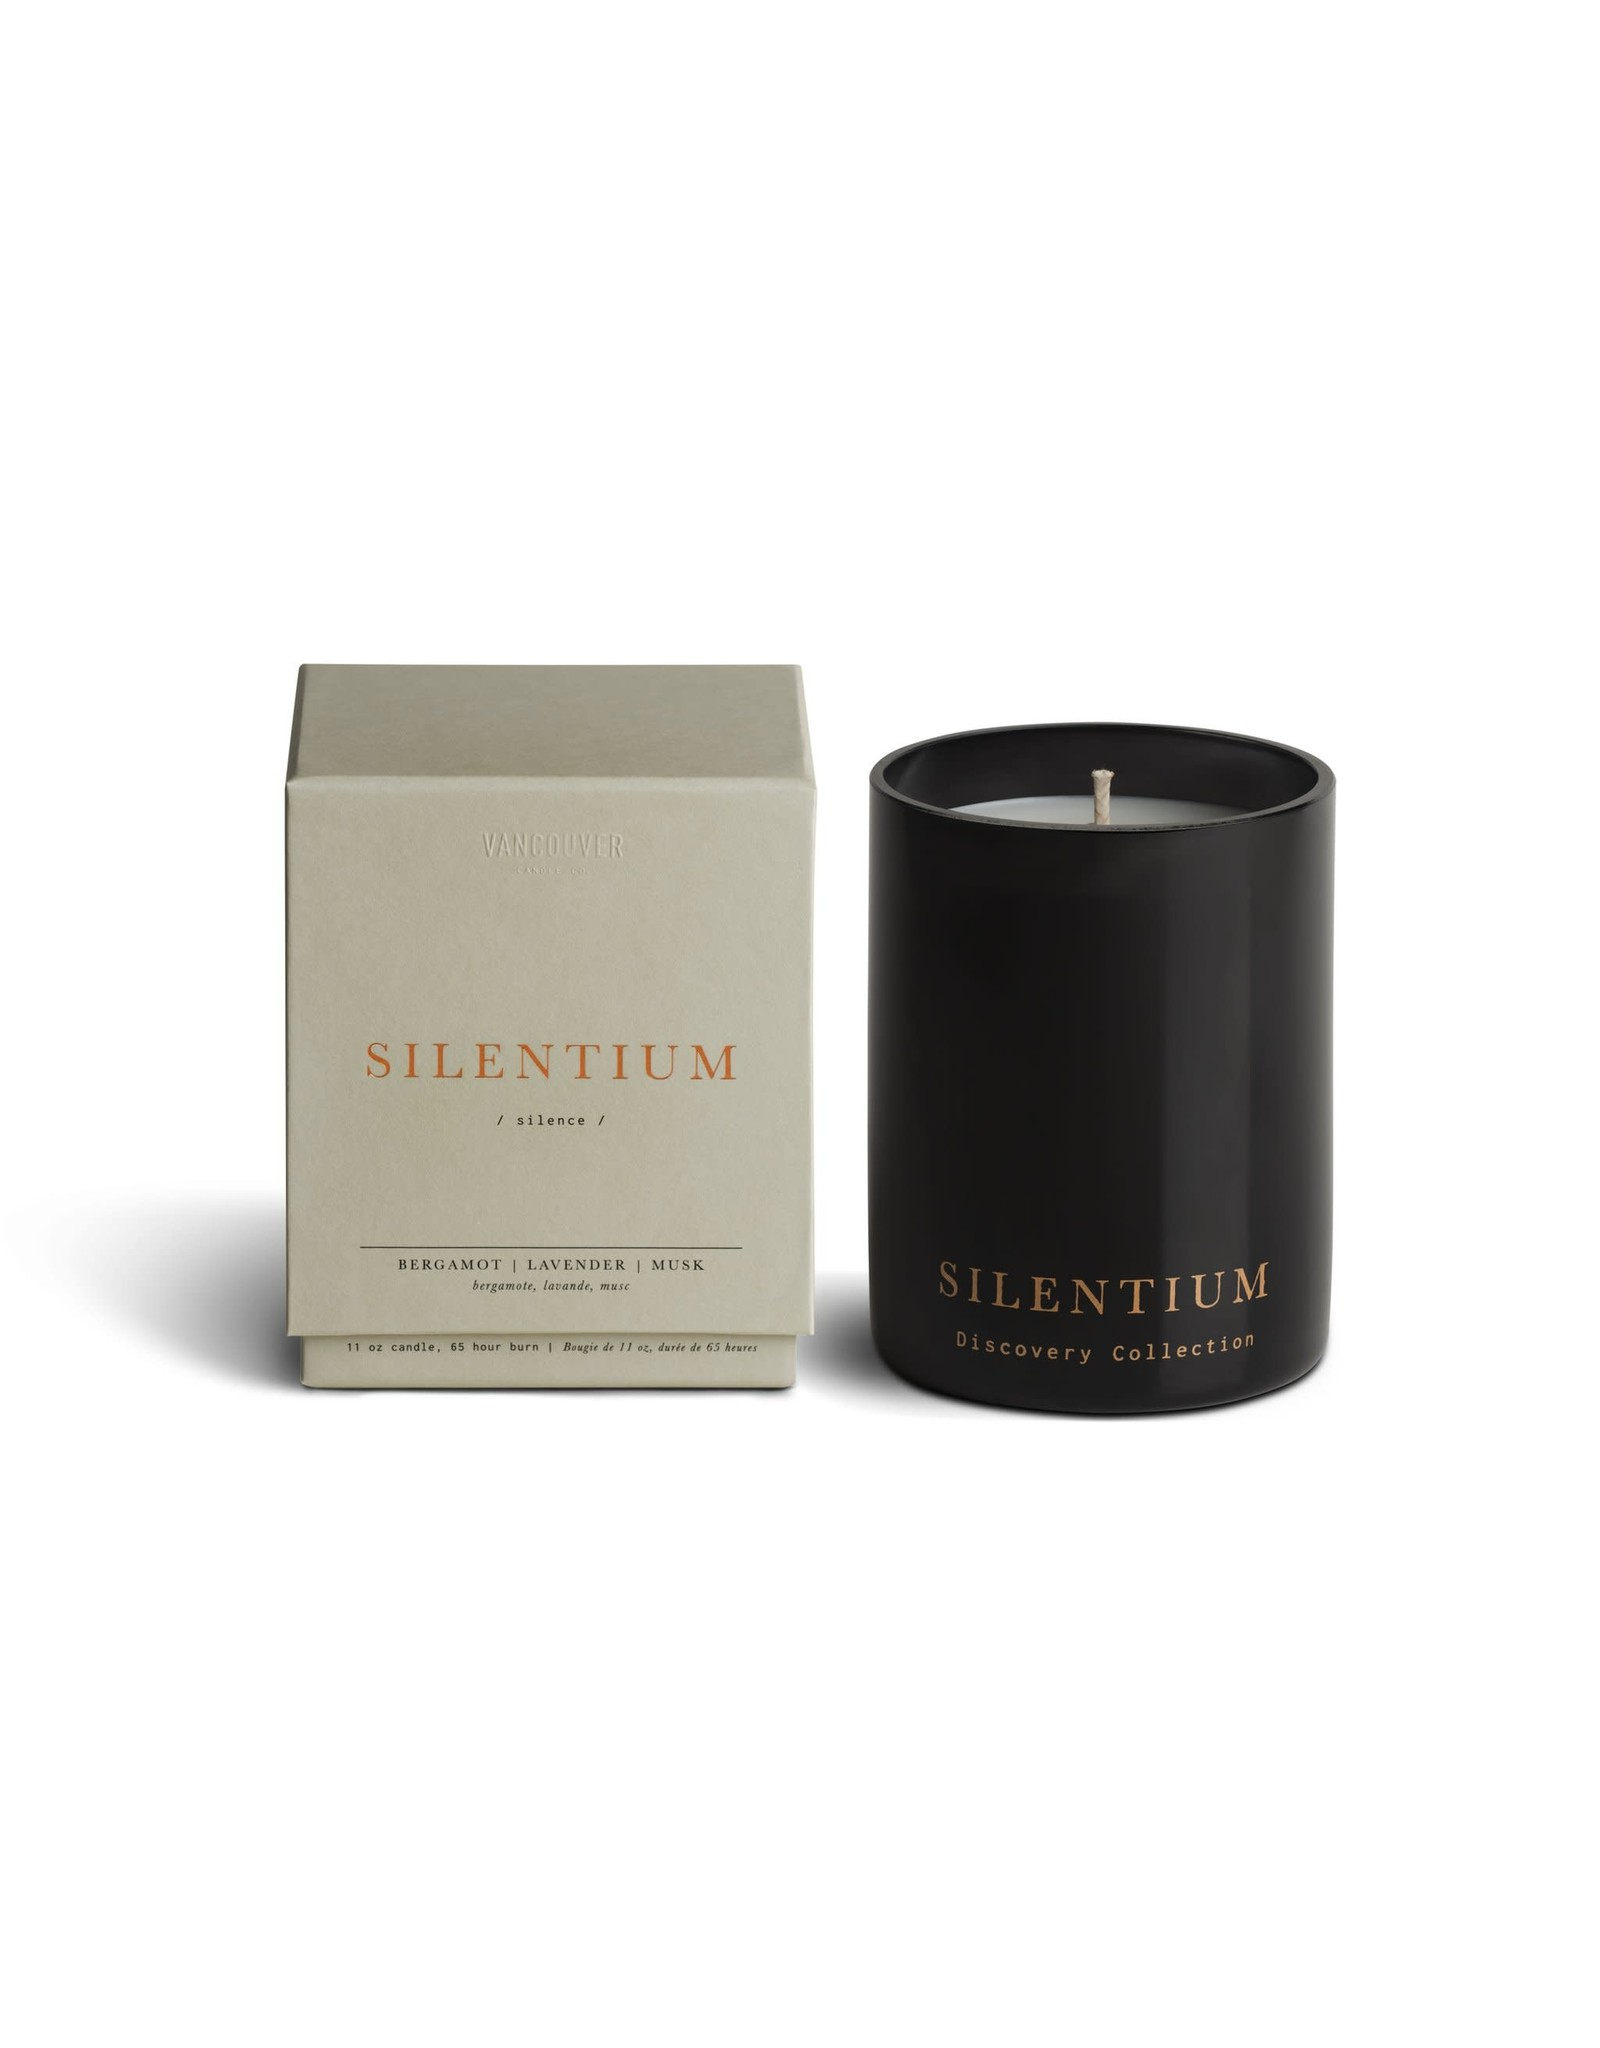 Vancouver Candle Co. Vancouver Candle Co. Single Wick Boxed Candle SILENTIUM